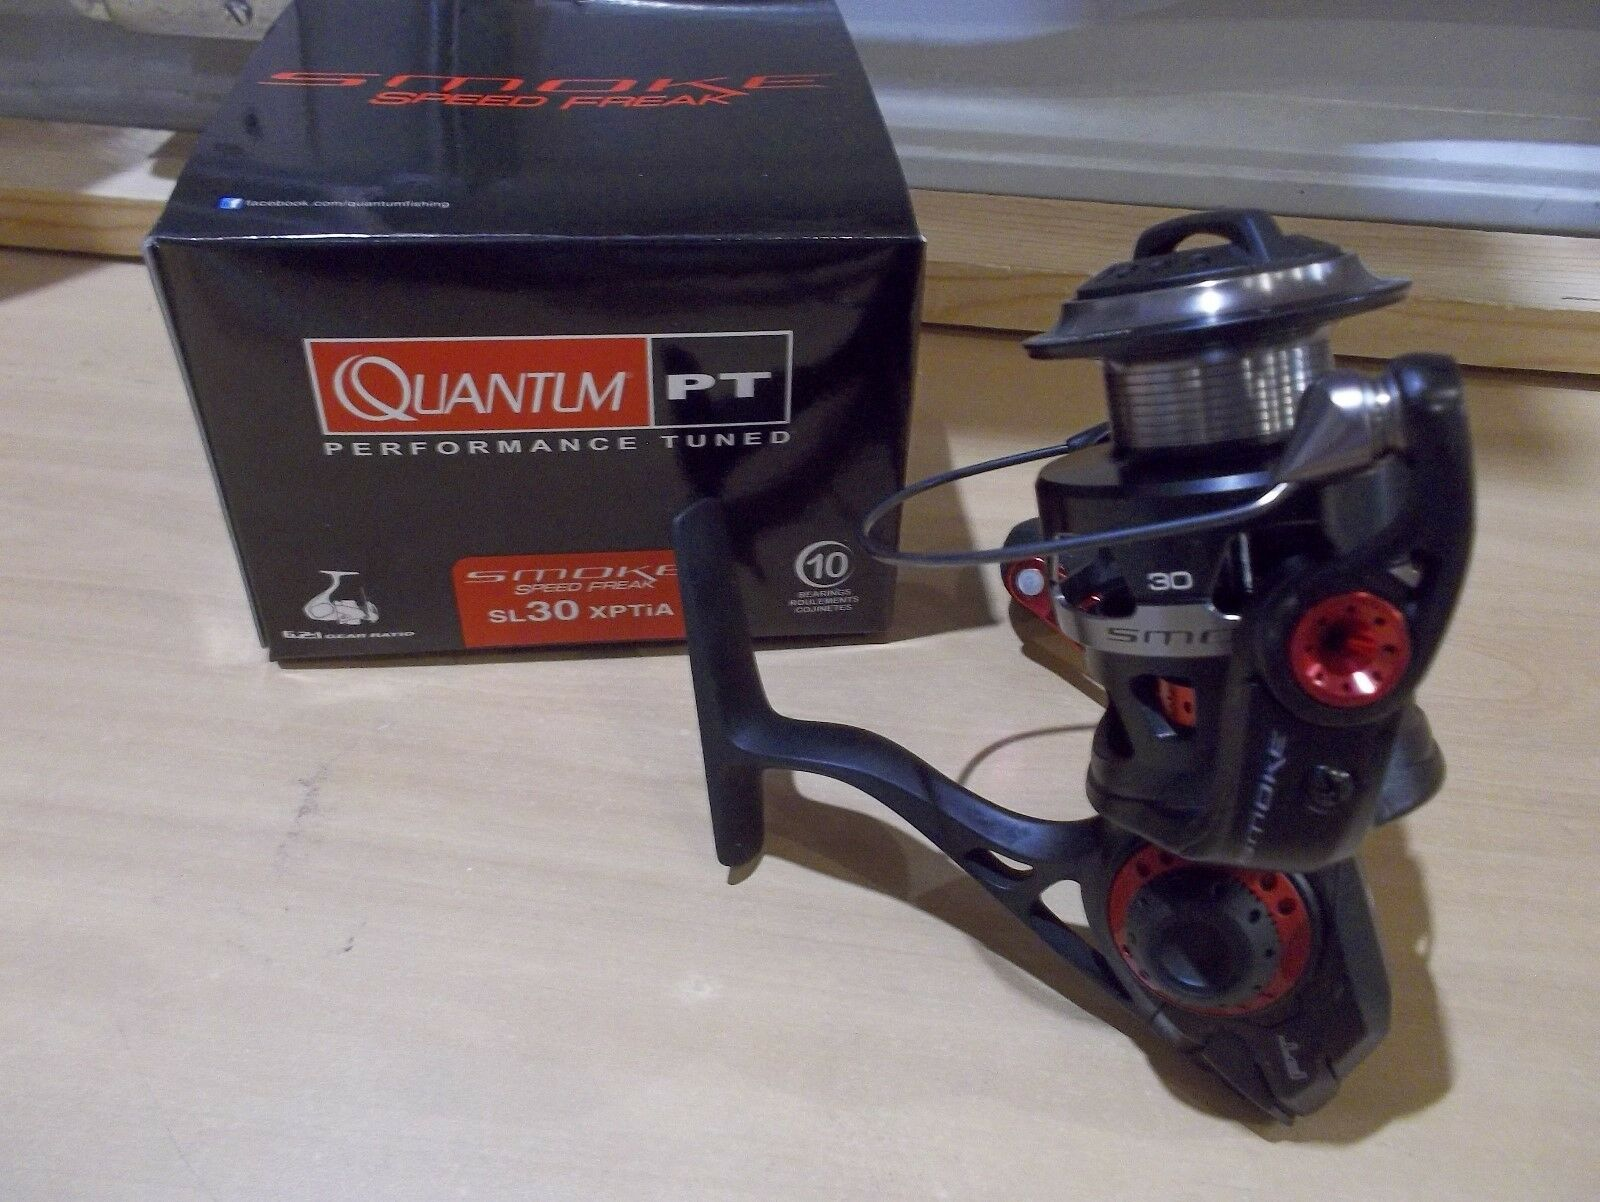 Quantum Smoke Speed Freak SL30XPTiA spinning reel New in Box   just buy it